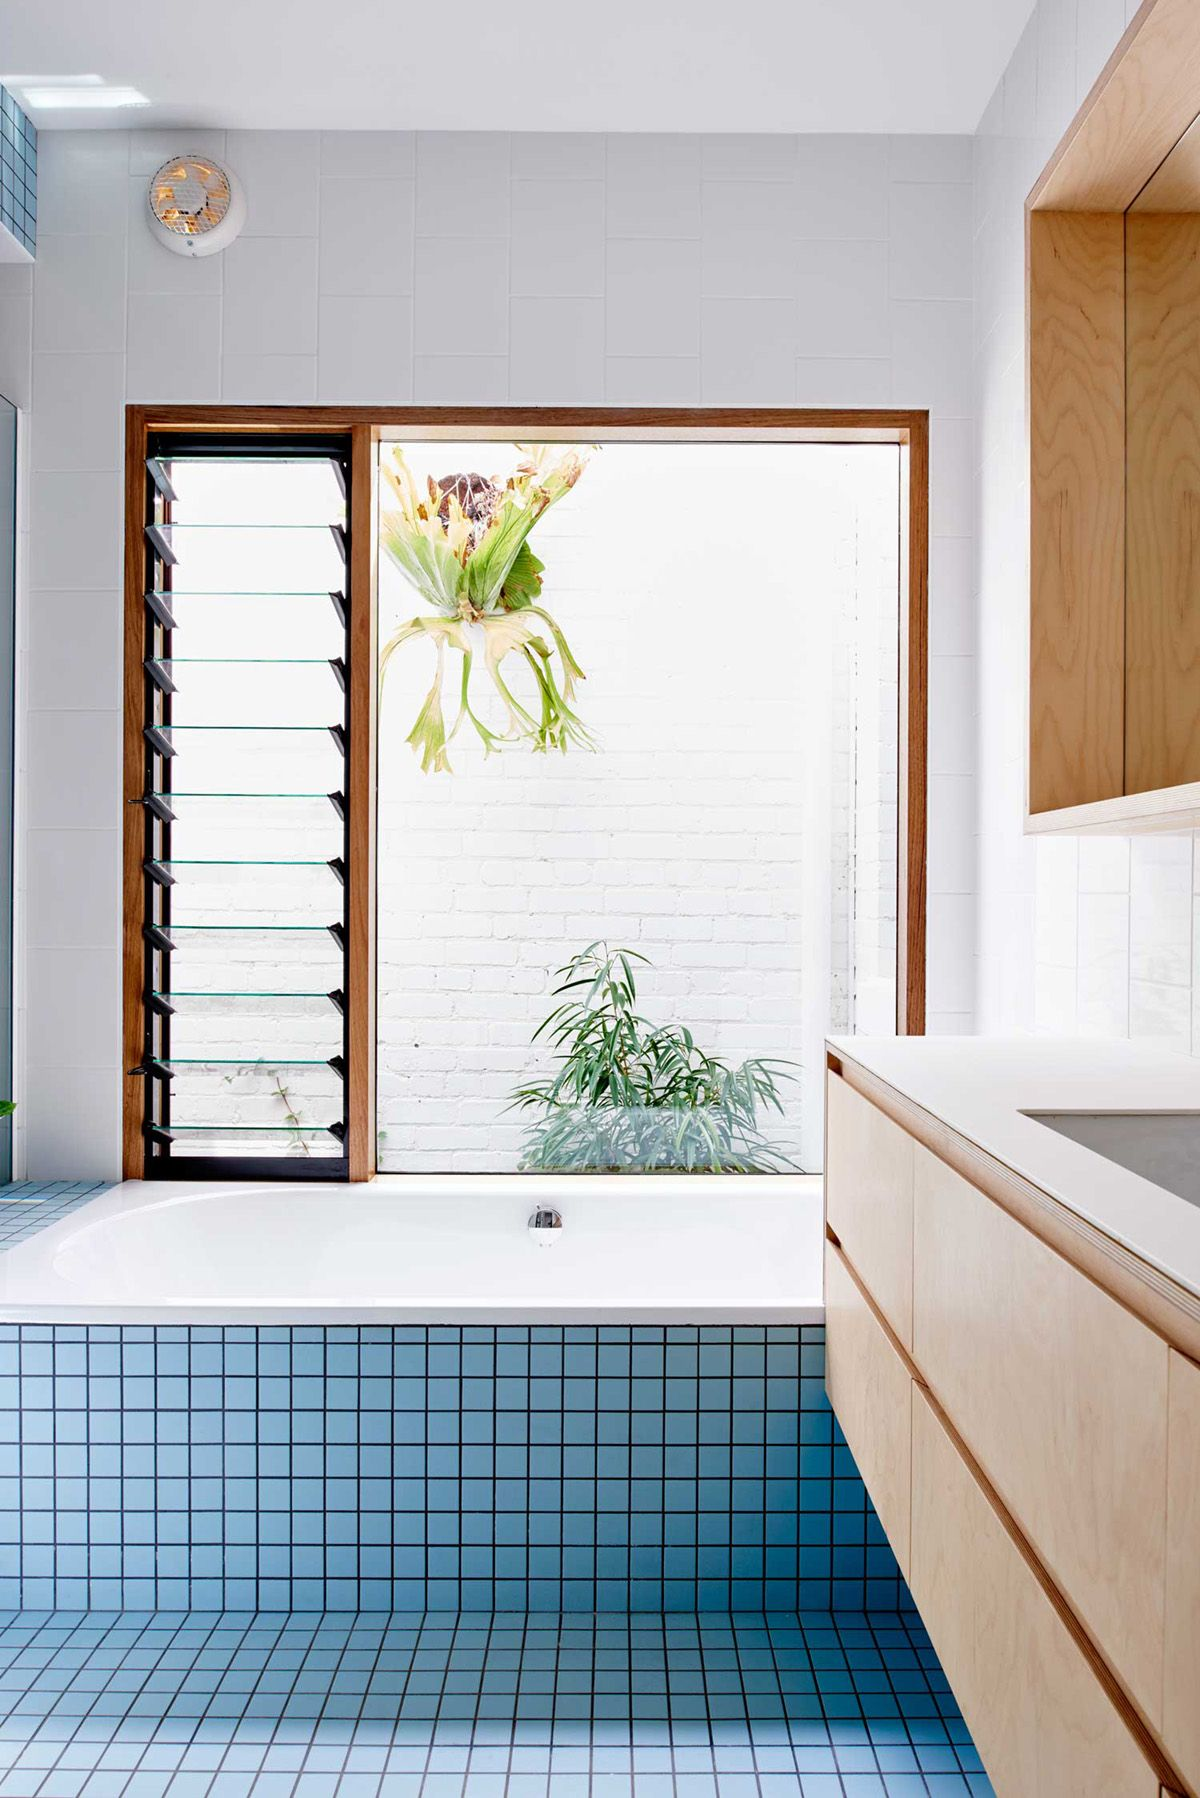 Baby Blue Bathroom Tile baby blue square tiles and light wood in this modern bath renovation | via  coco kelley